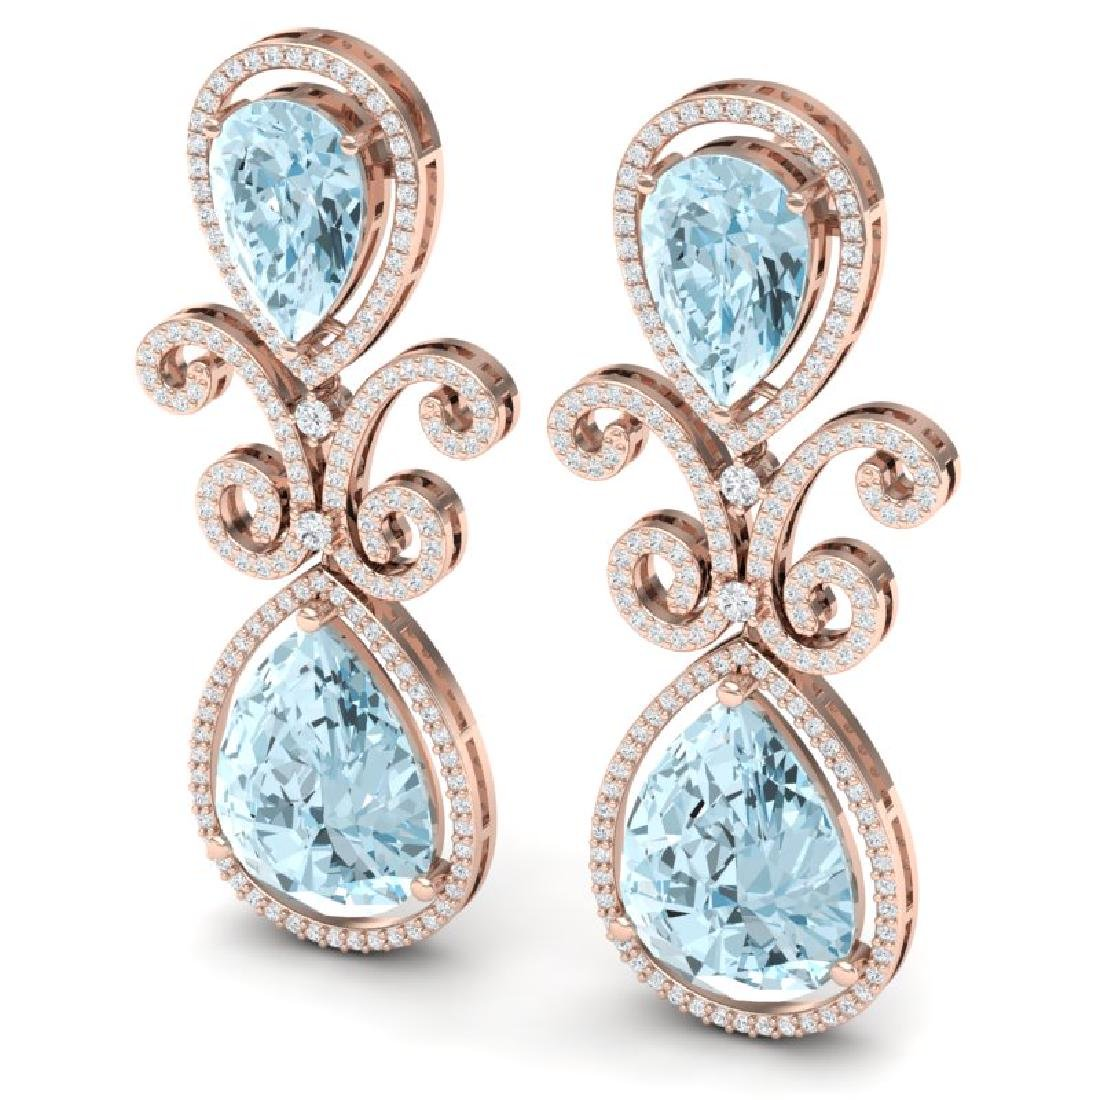 30.49 CTW Royalty Sky Topaz & VS Diamond Earrings 18K - 2